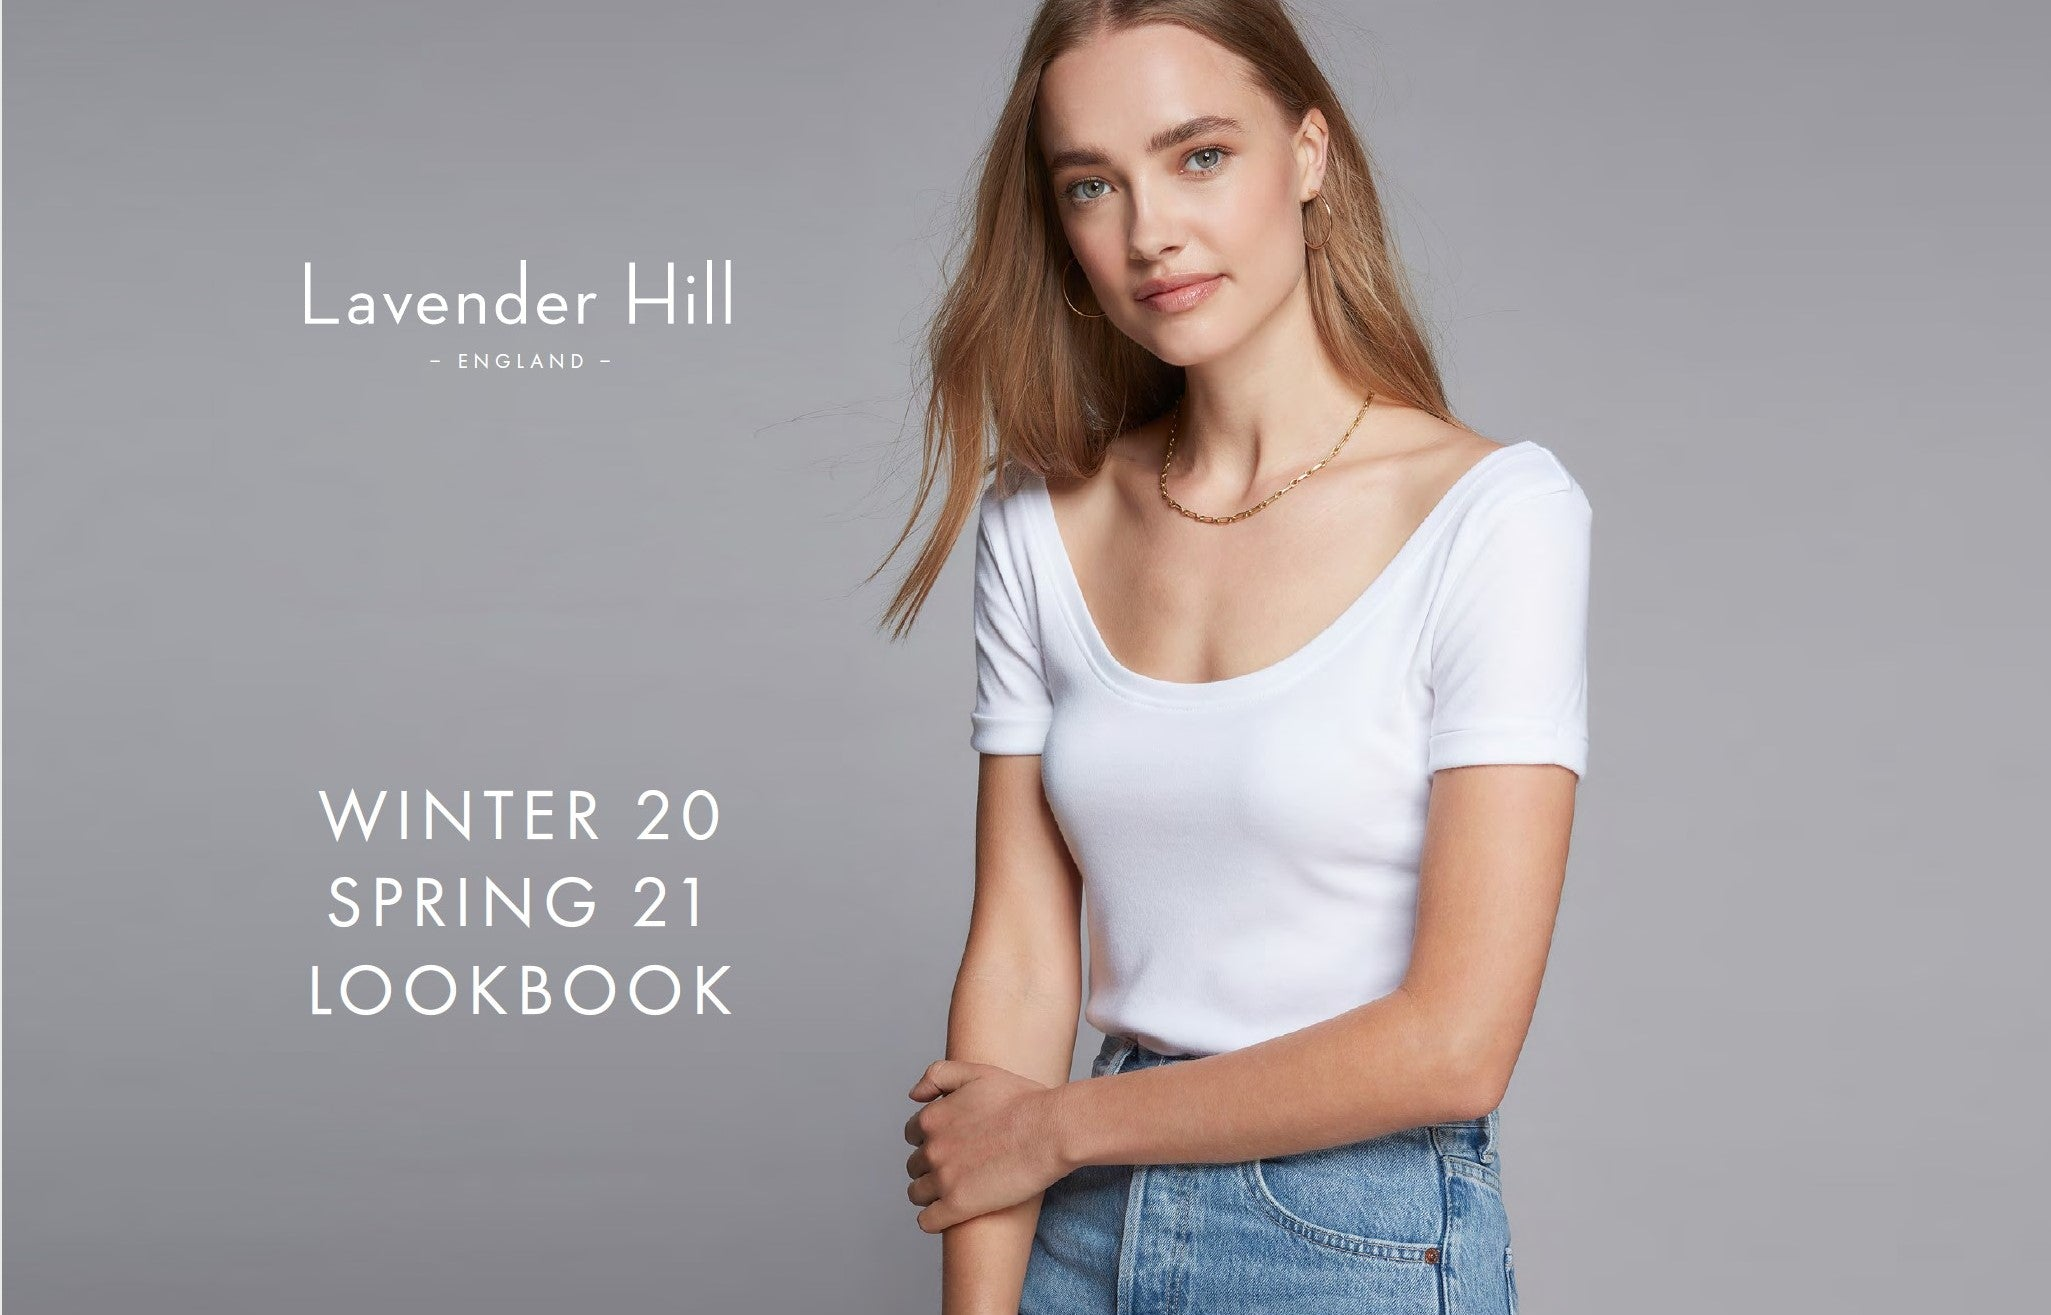 Lavender Hill Lookbook Front Cover